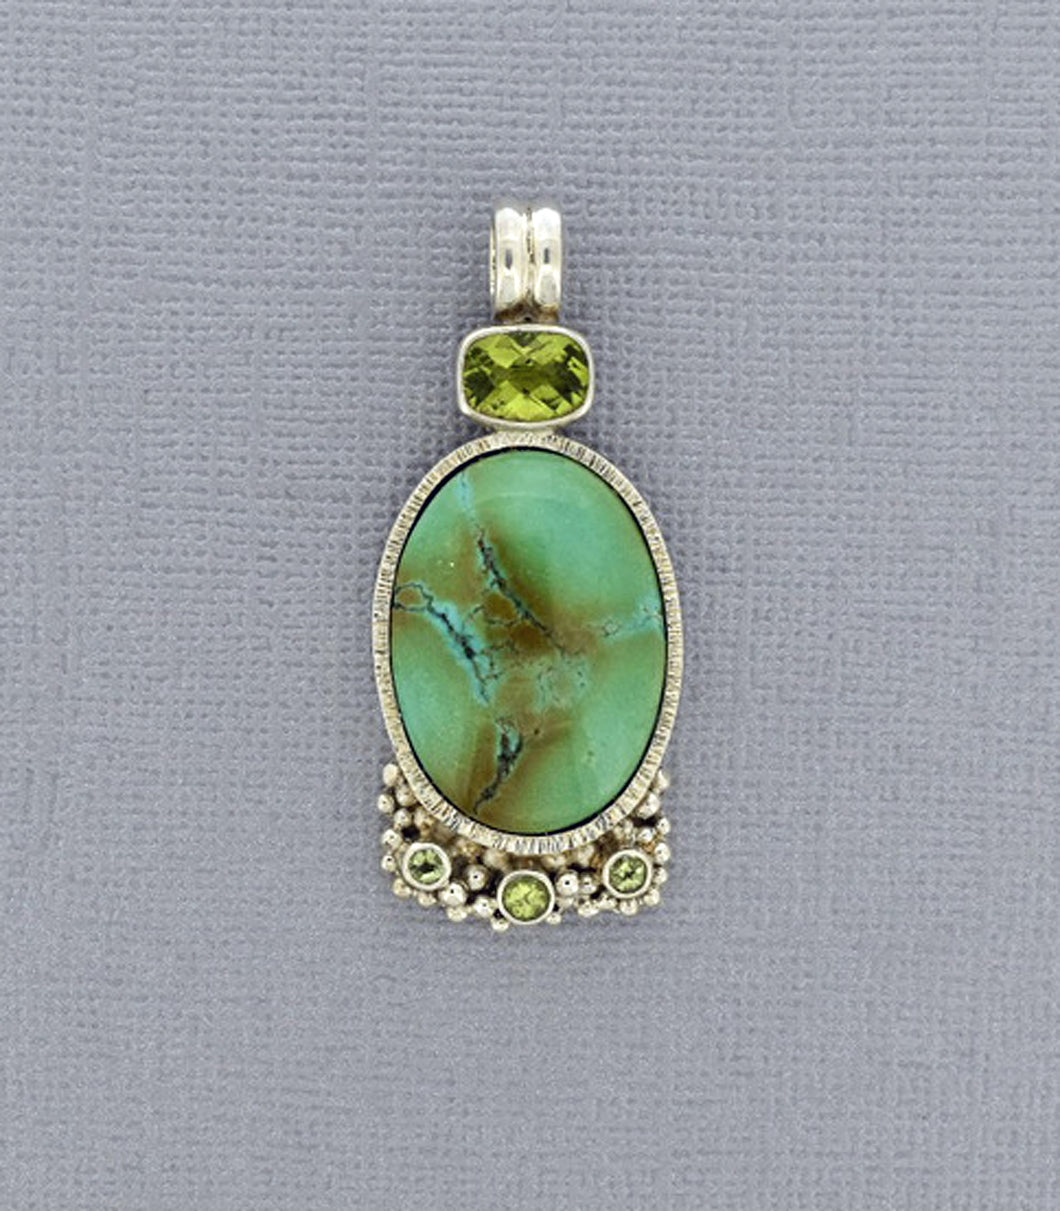 Green Turquoise Pendant with Peridot Accents